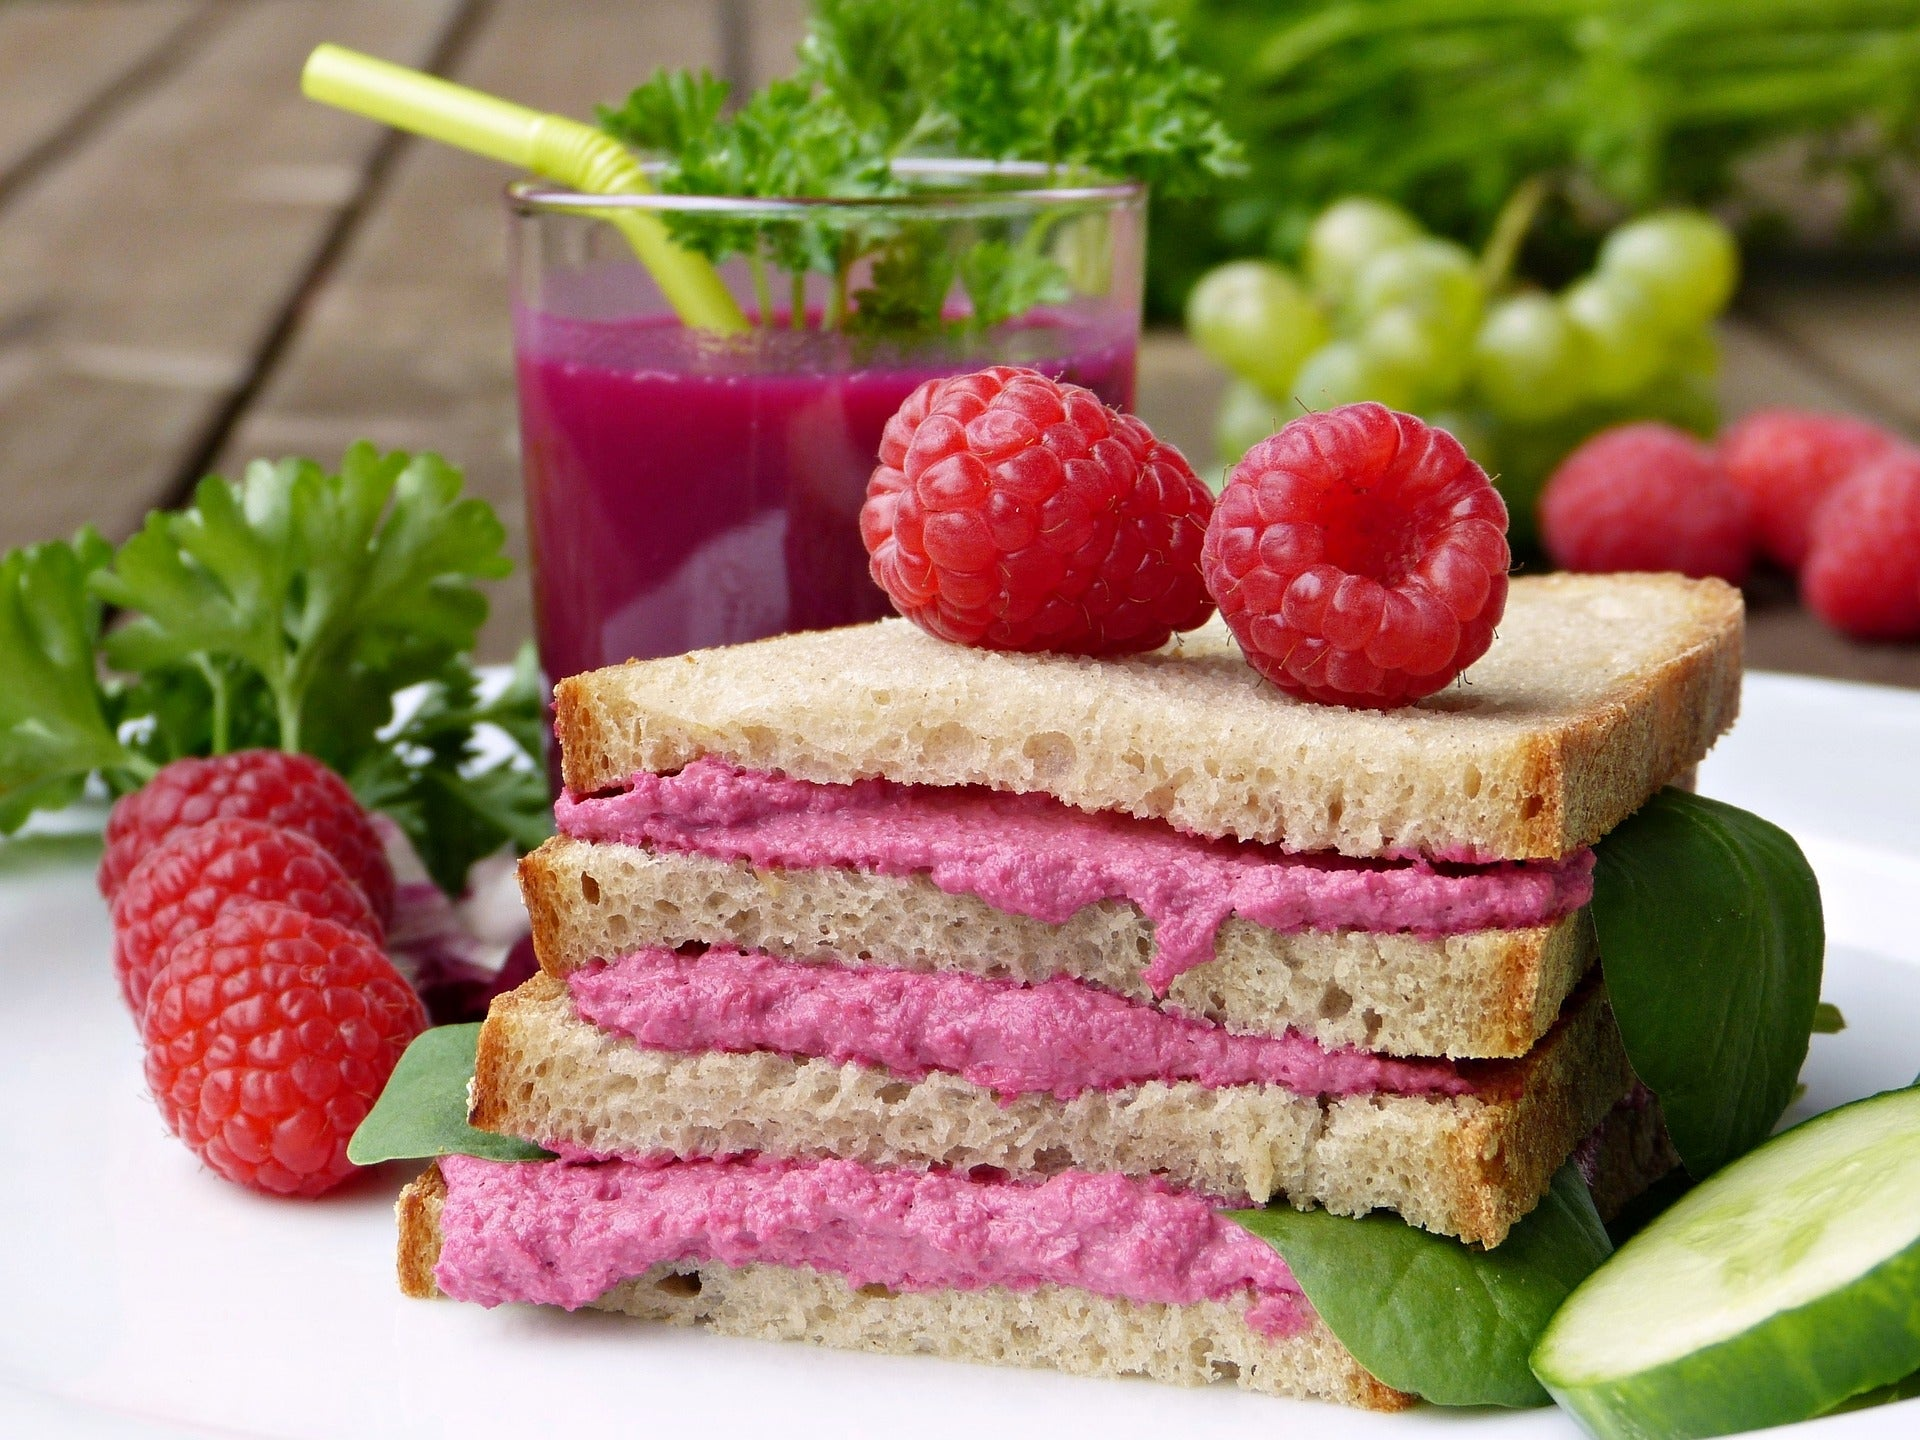 Creating healthy spreads to put in between your sandwiches can be a fun mindfulness exercise you can do alone or with your family.